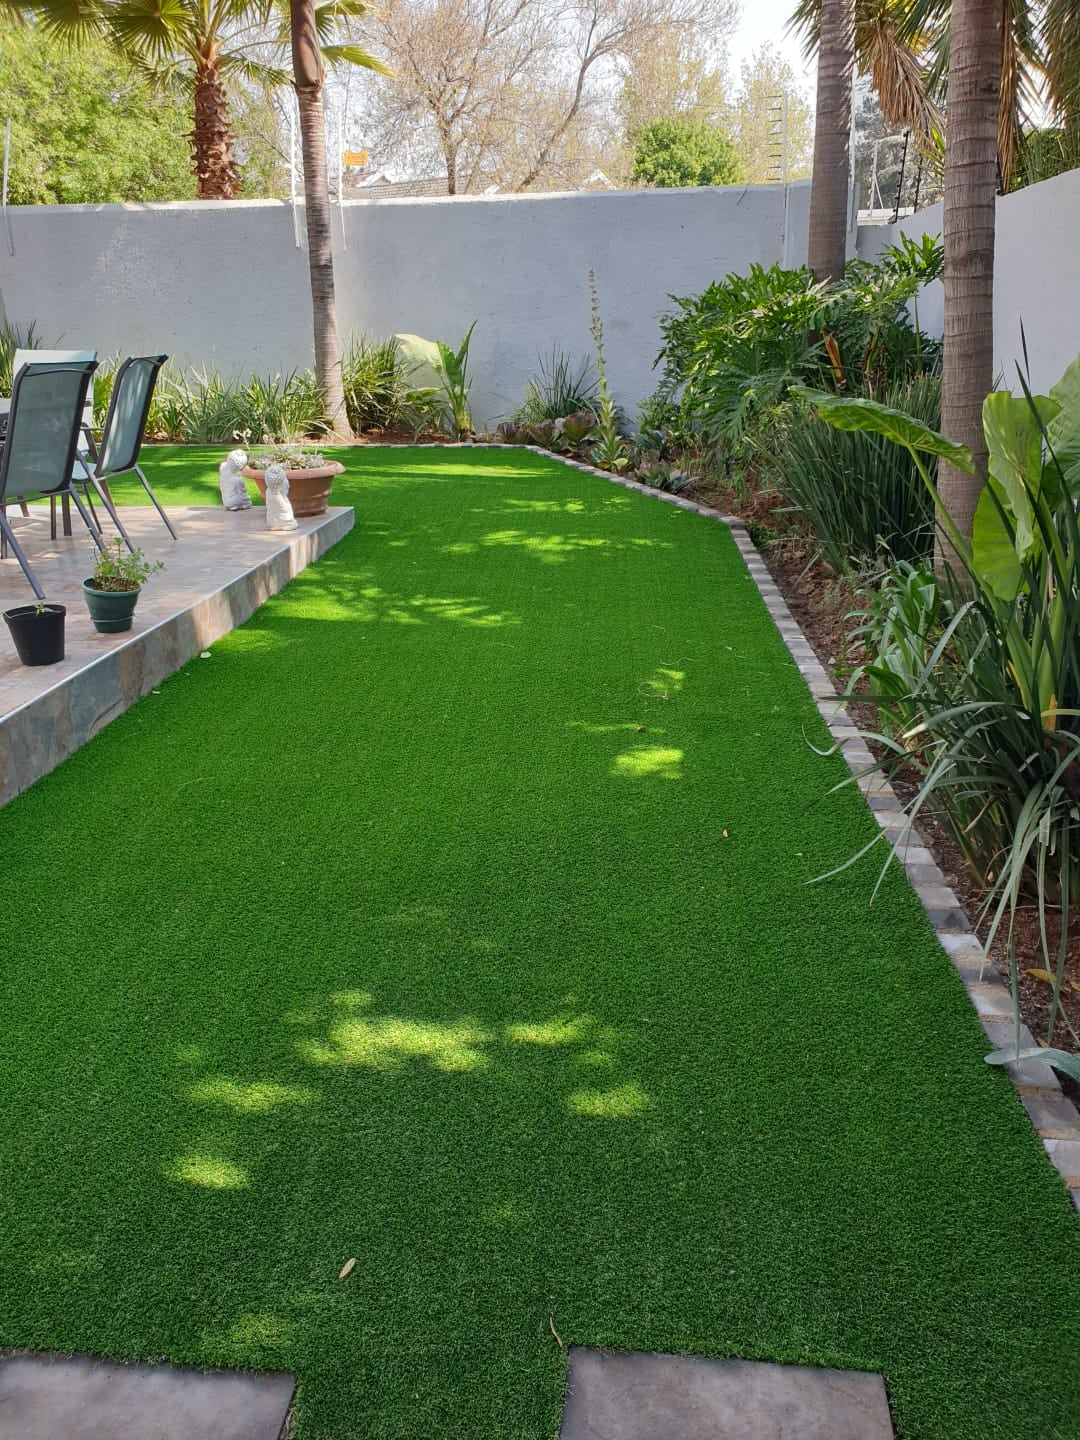 Artificial grass:Suppliers and installers.